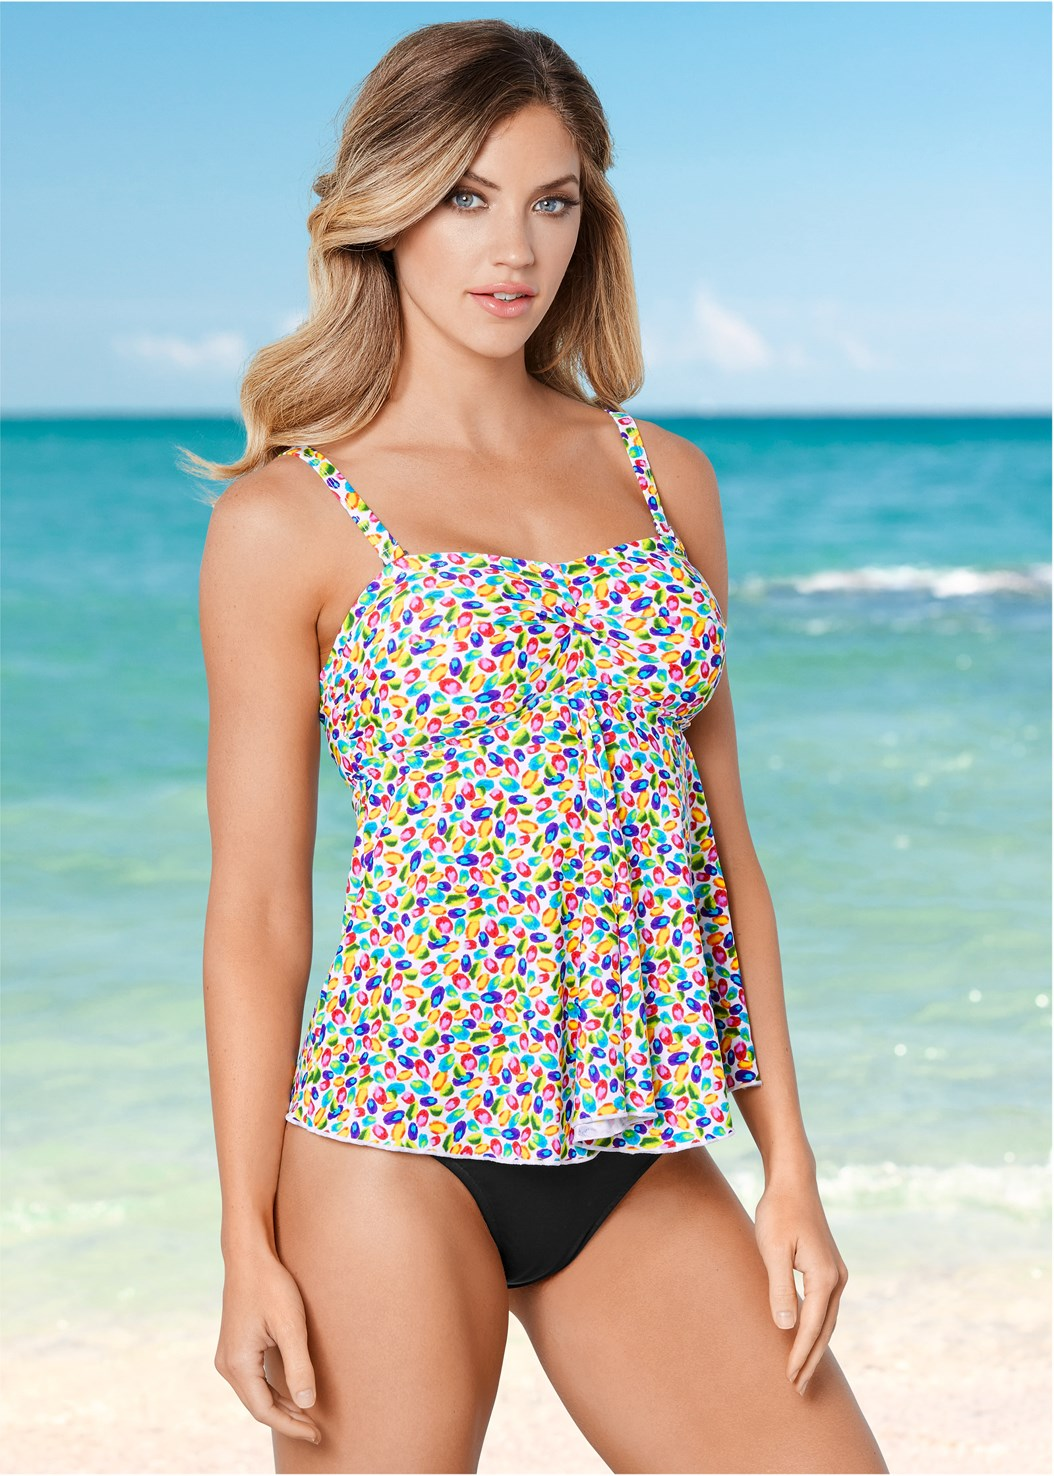 Flyaway Tankini Top,Mid Rise Hipster Classic Bikini Bottom,Full Coverage Mid Rise Hipster Bikini Bottom